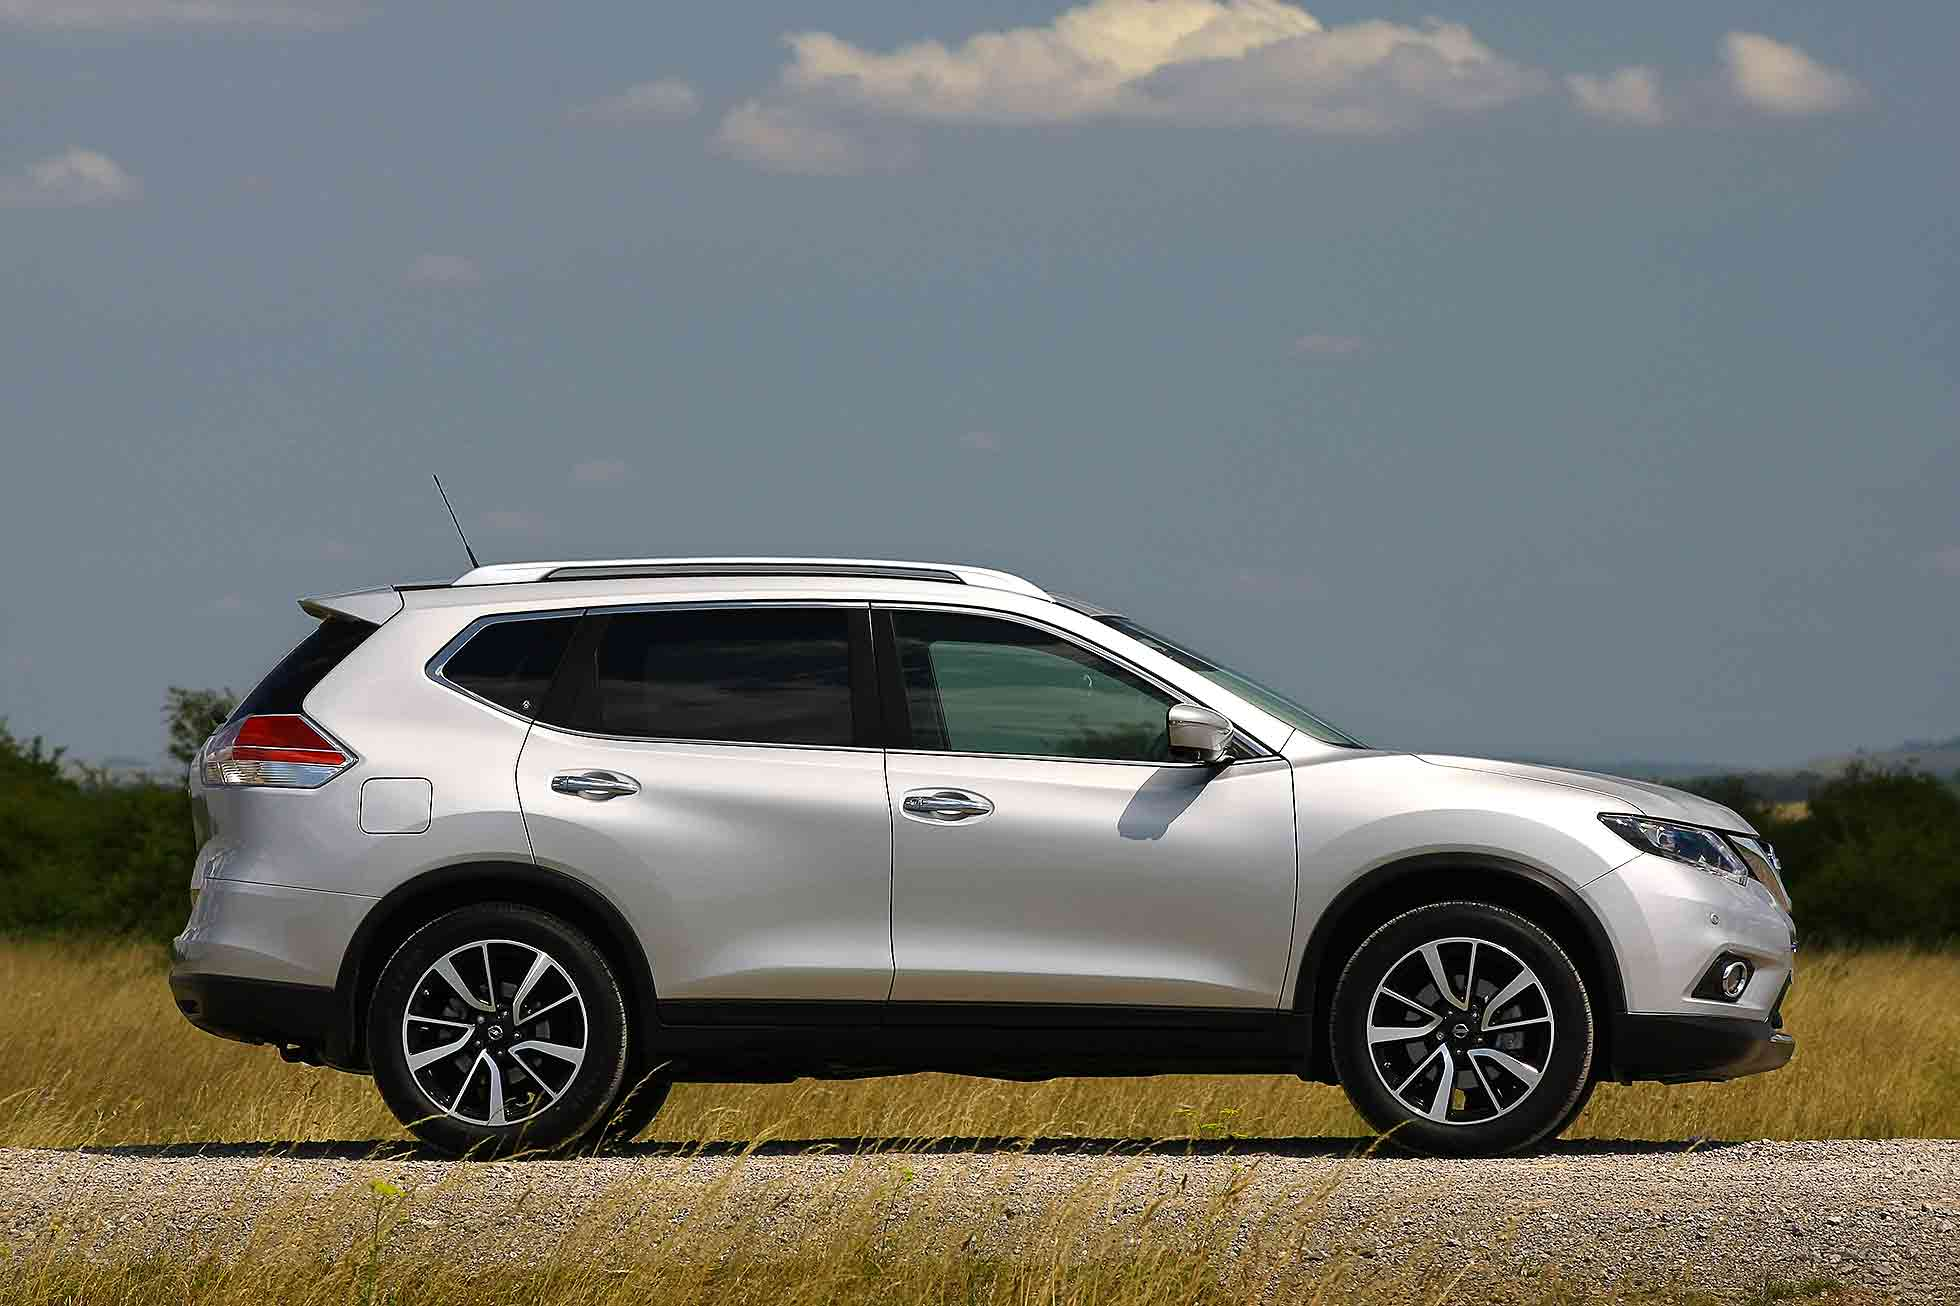 nissan x trail review 2014 road test motoring research. Black Bedroom Furniture Sets. Home Design Ideas